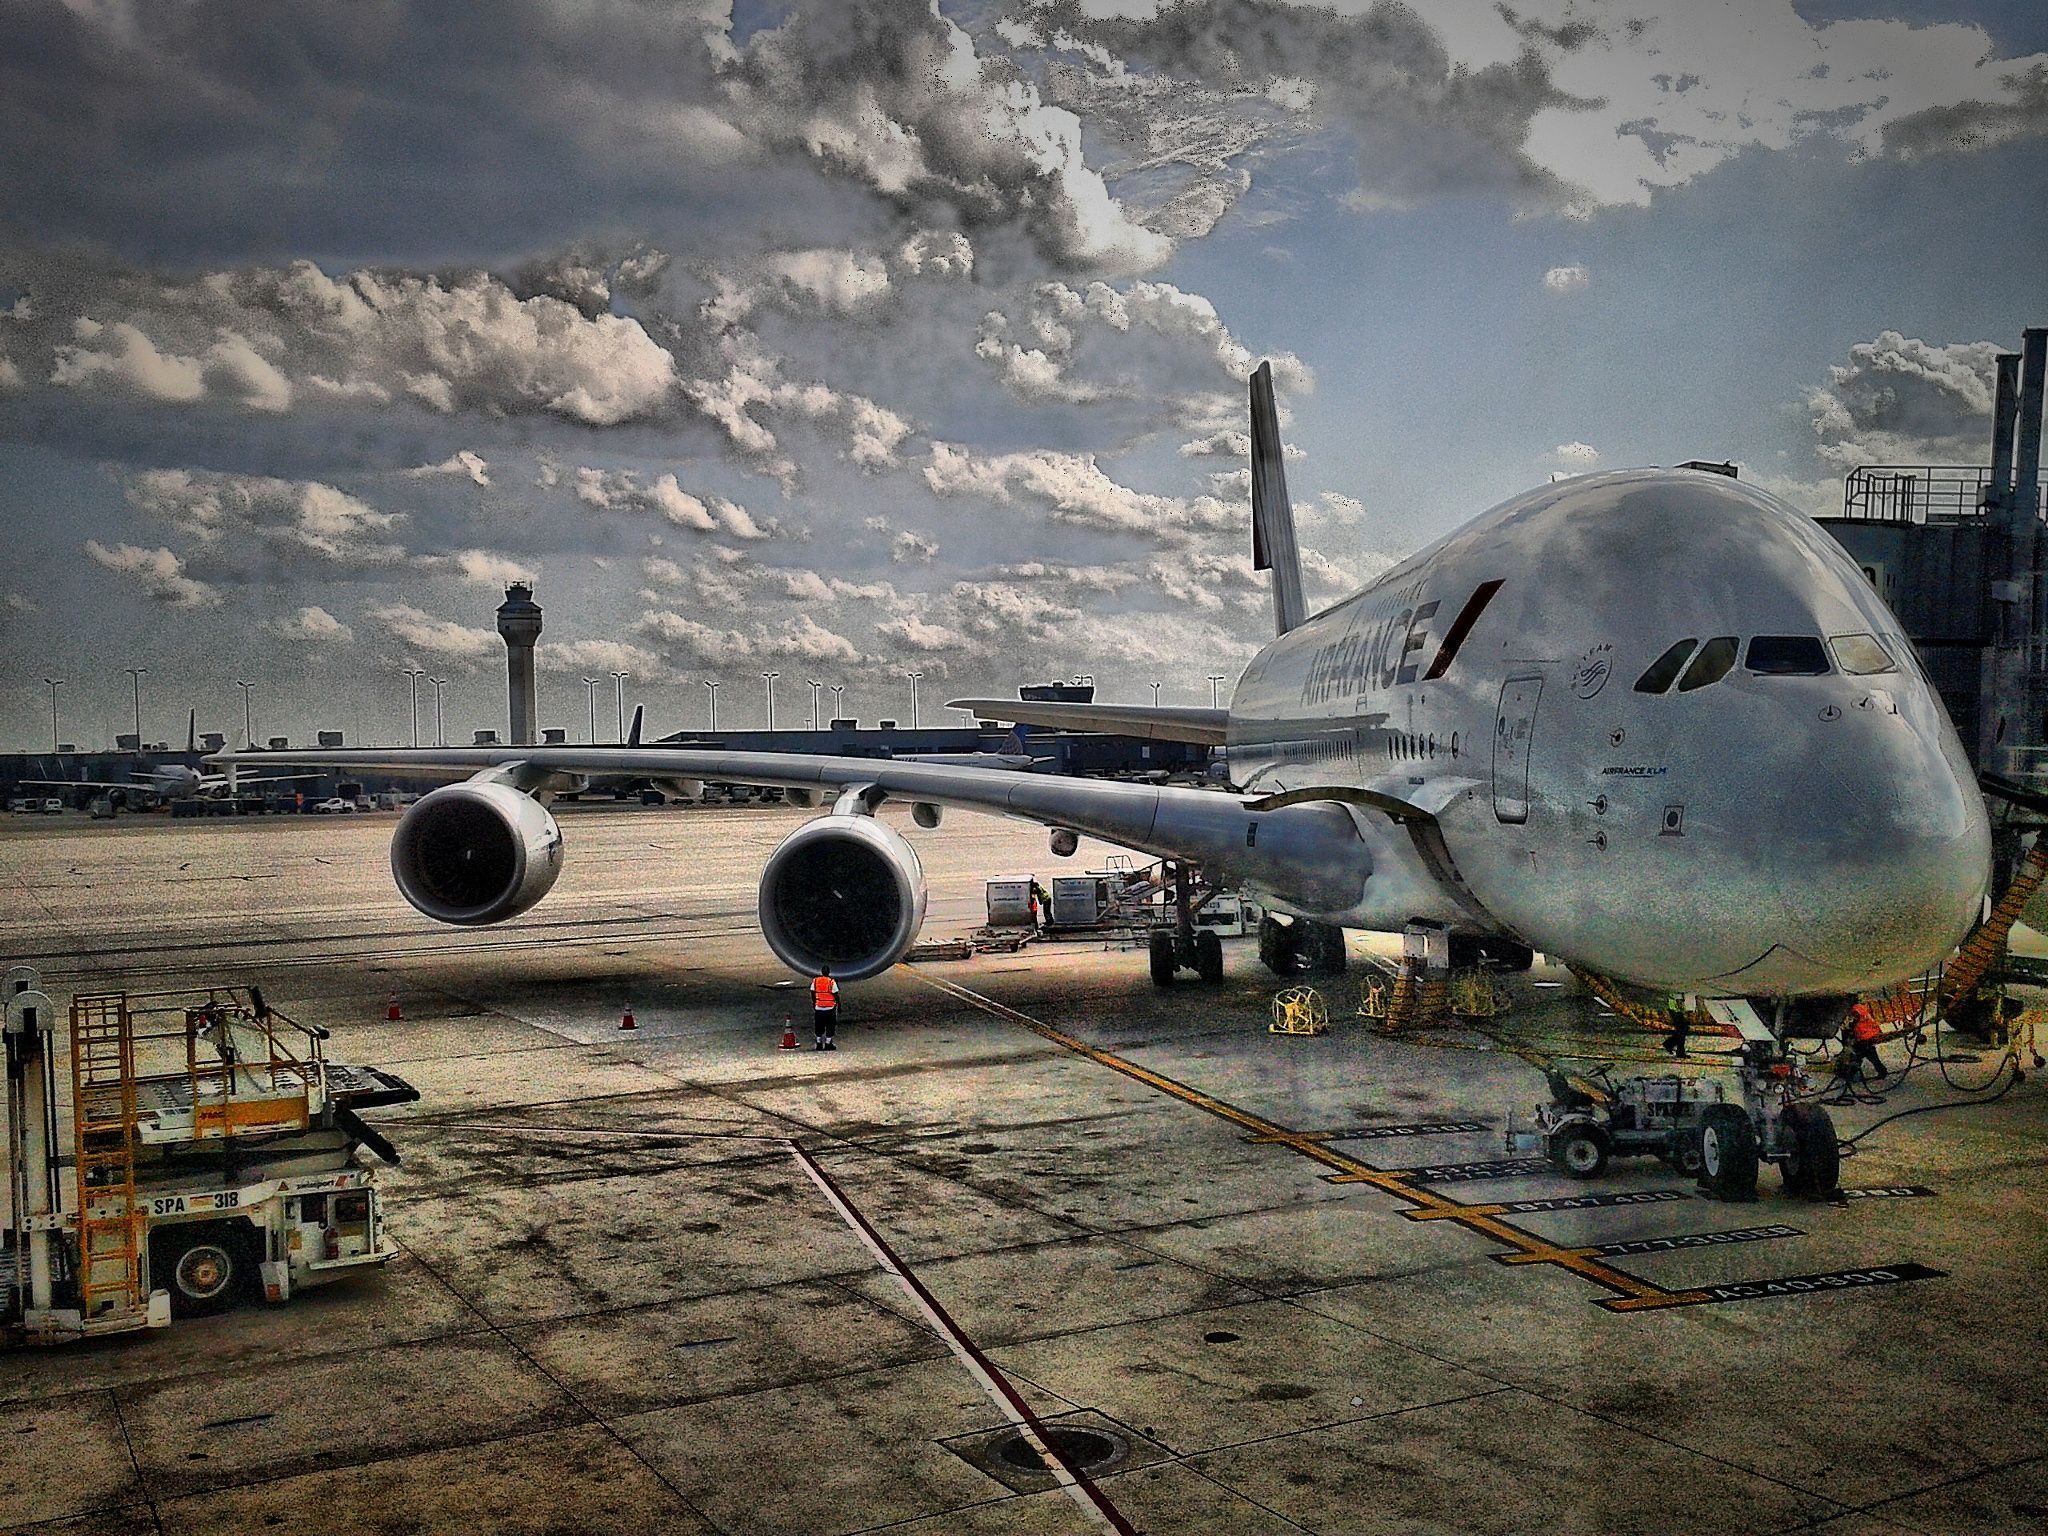 Airport France - 3 by Ultras035 on 500px